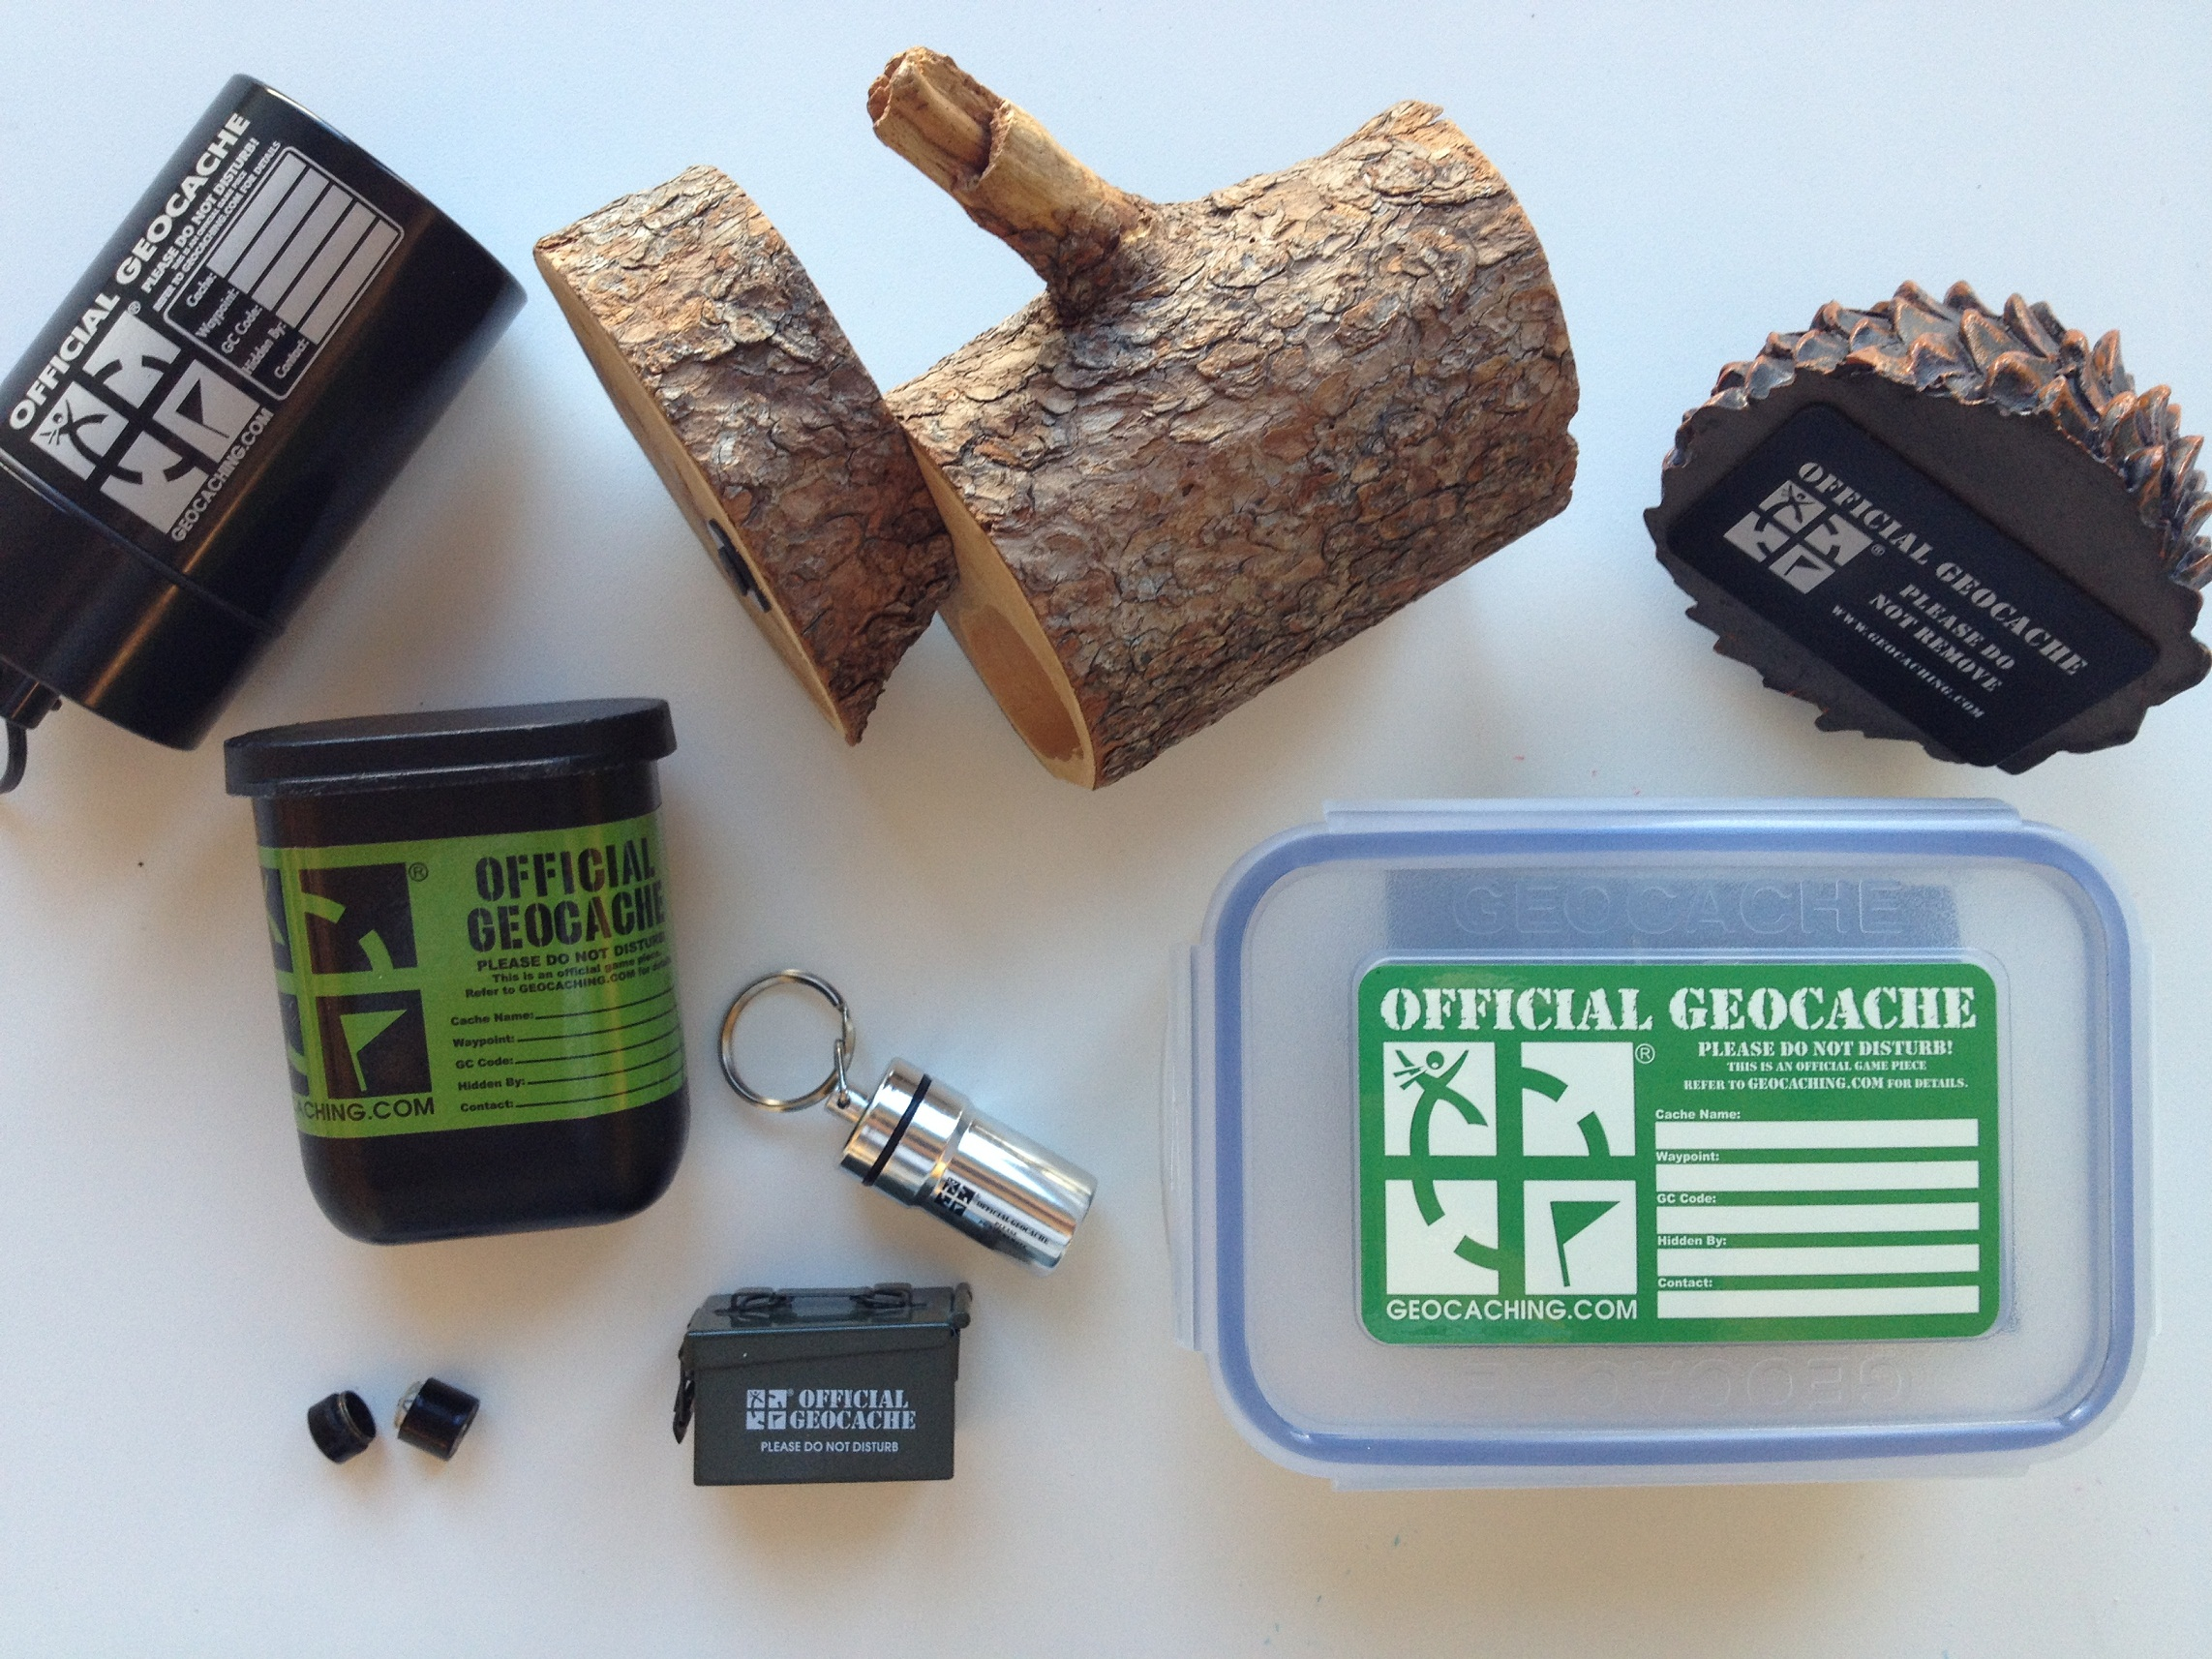 Not all of these containers we specifically developed as geocaches.